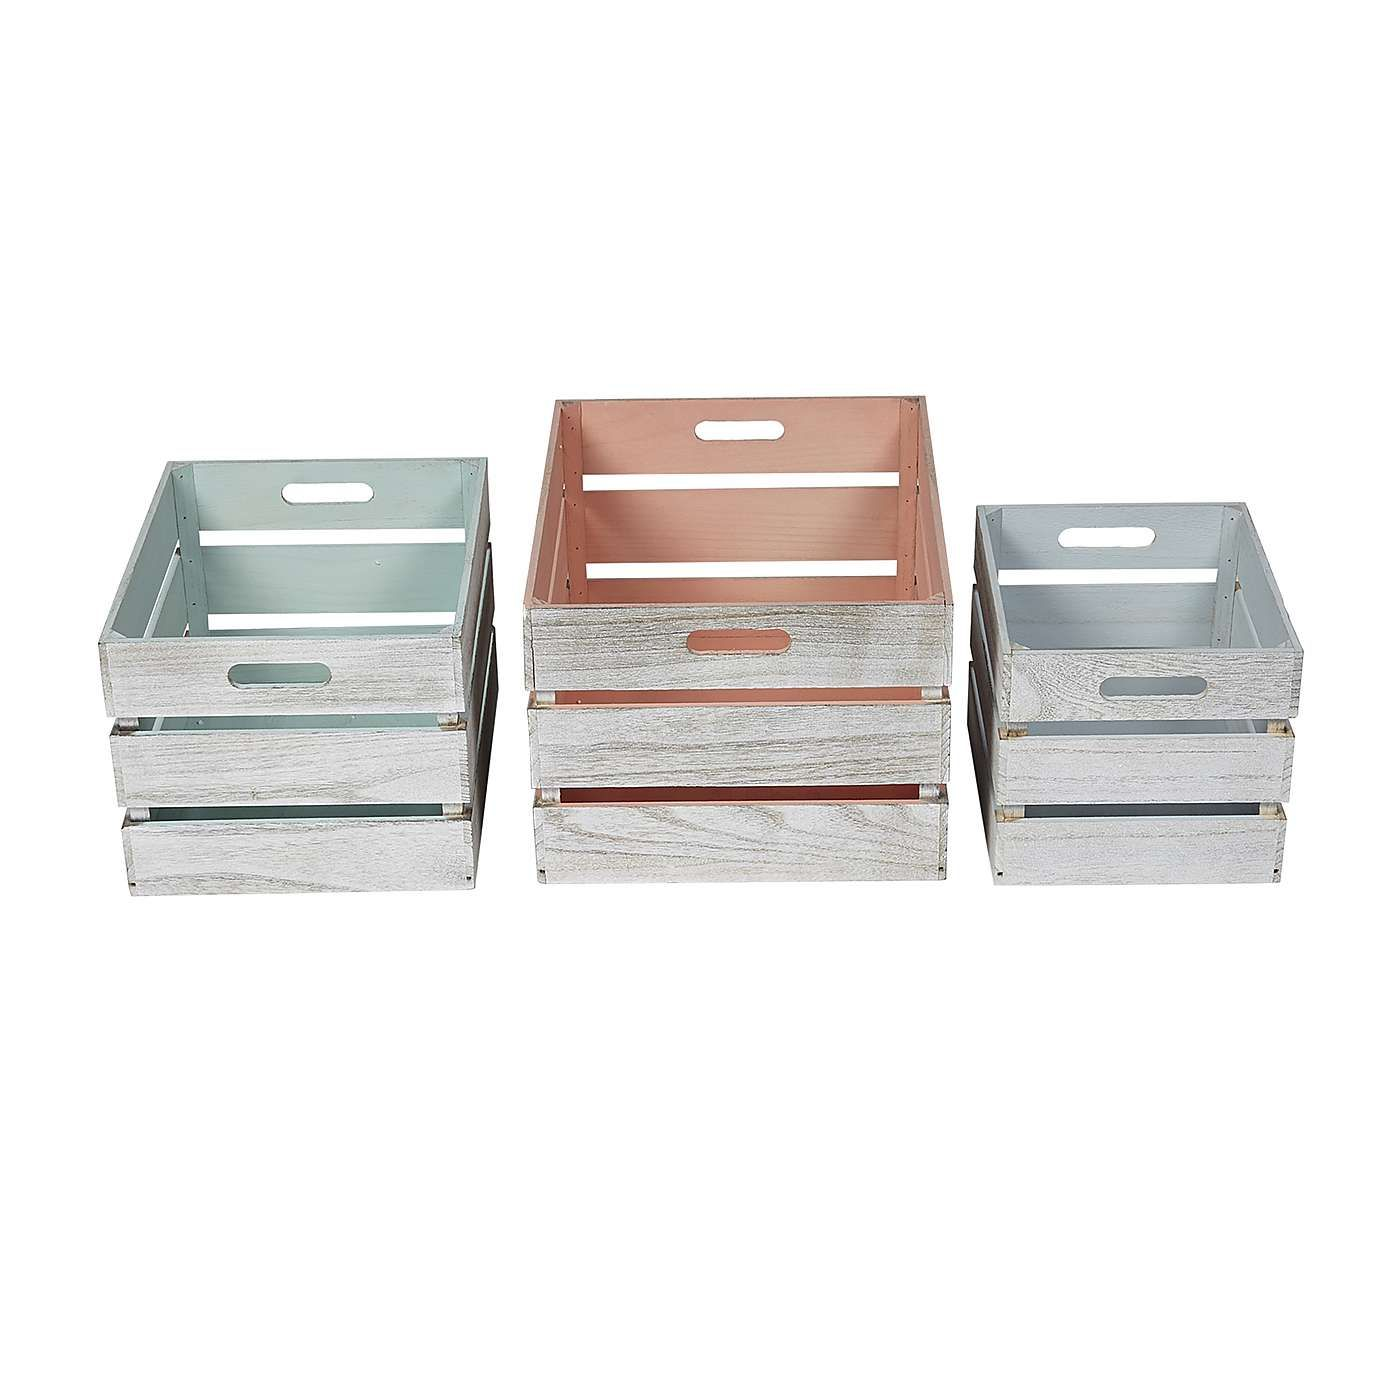 set of 3 painted wooden crates | dunelm | home decor